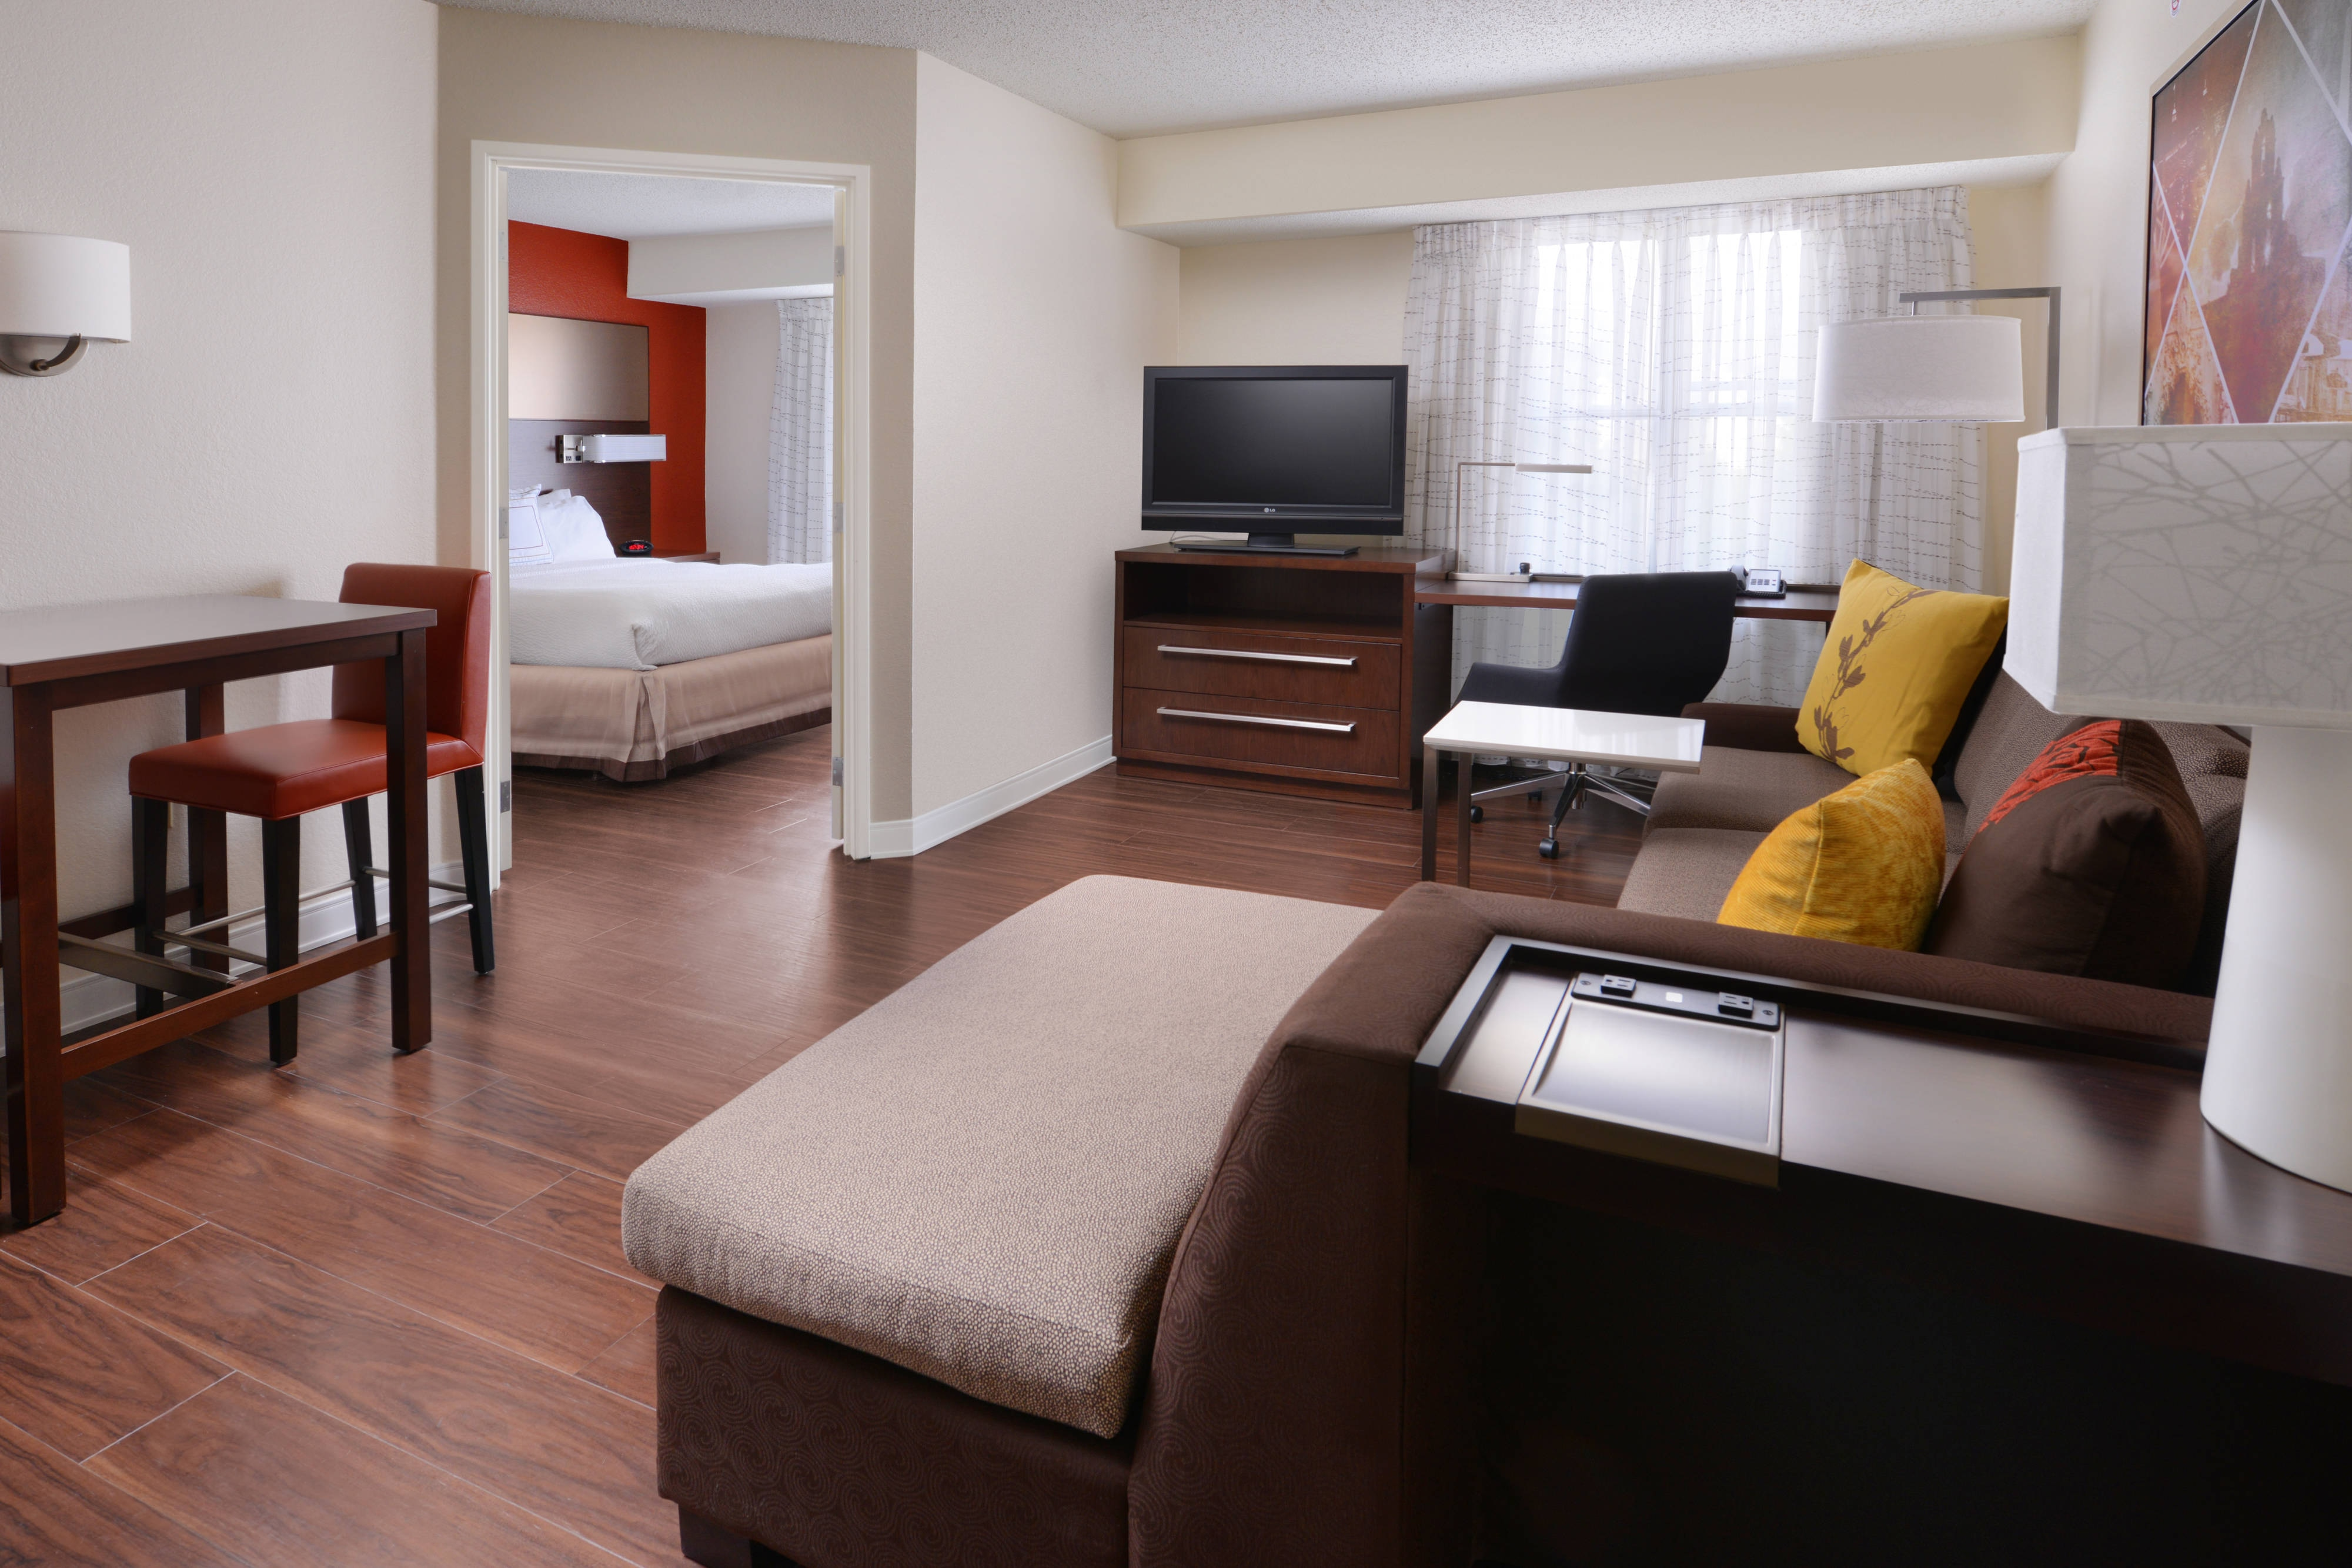 Extended Stay Hotel Rooms Alamo Heights Residence Inn San Antonio Airport